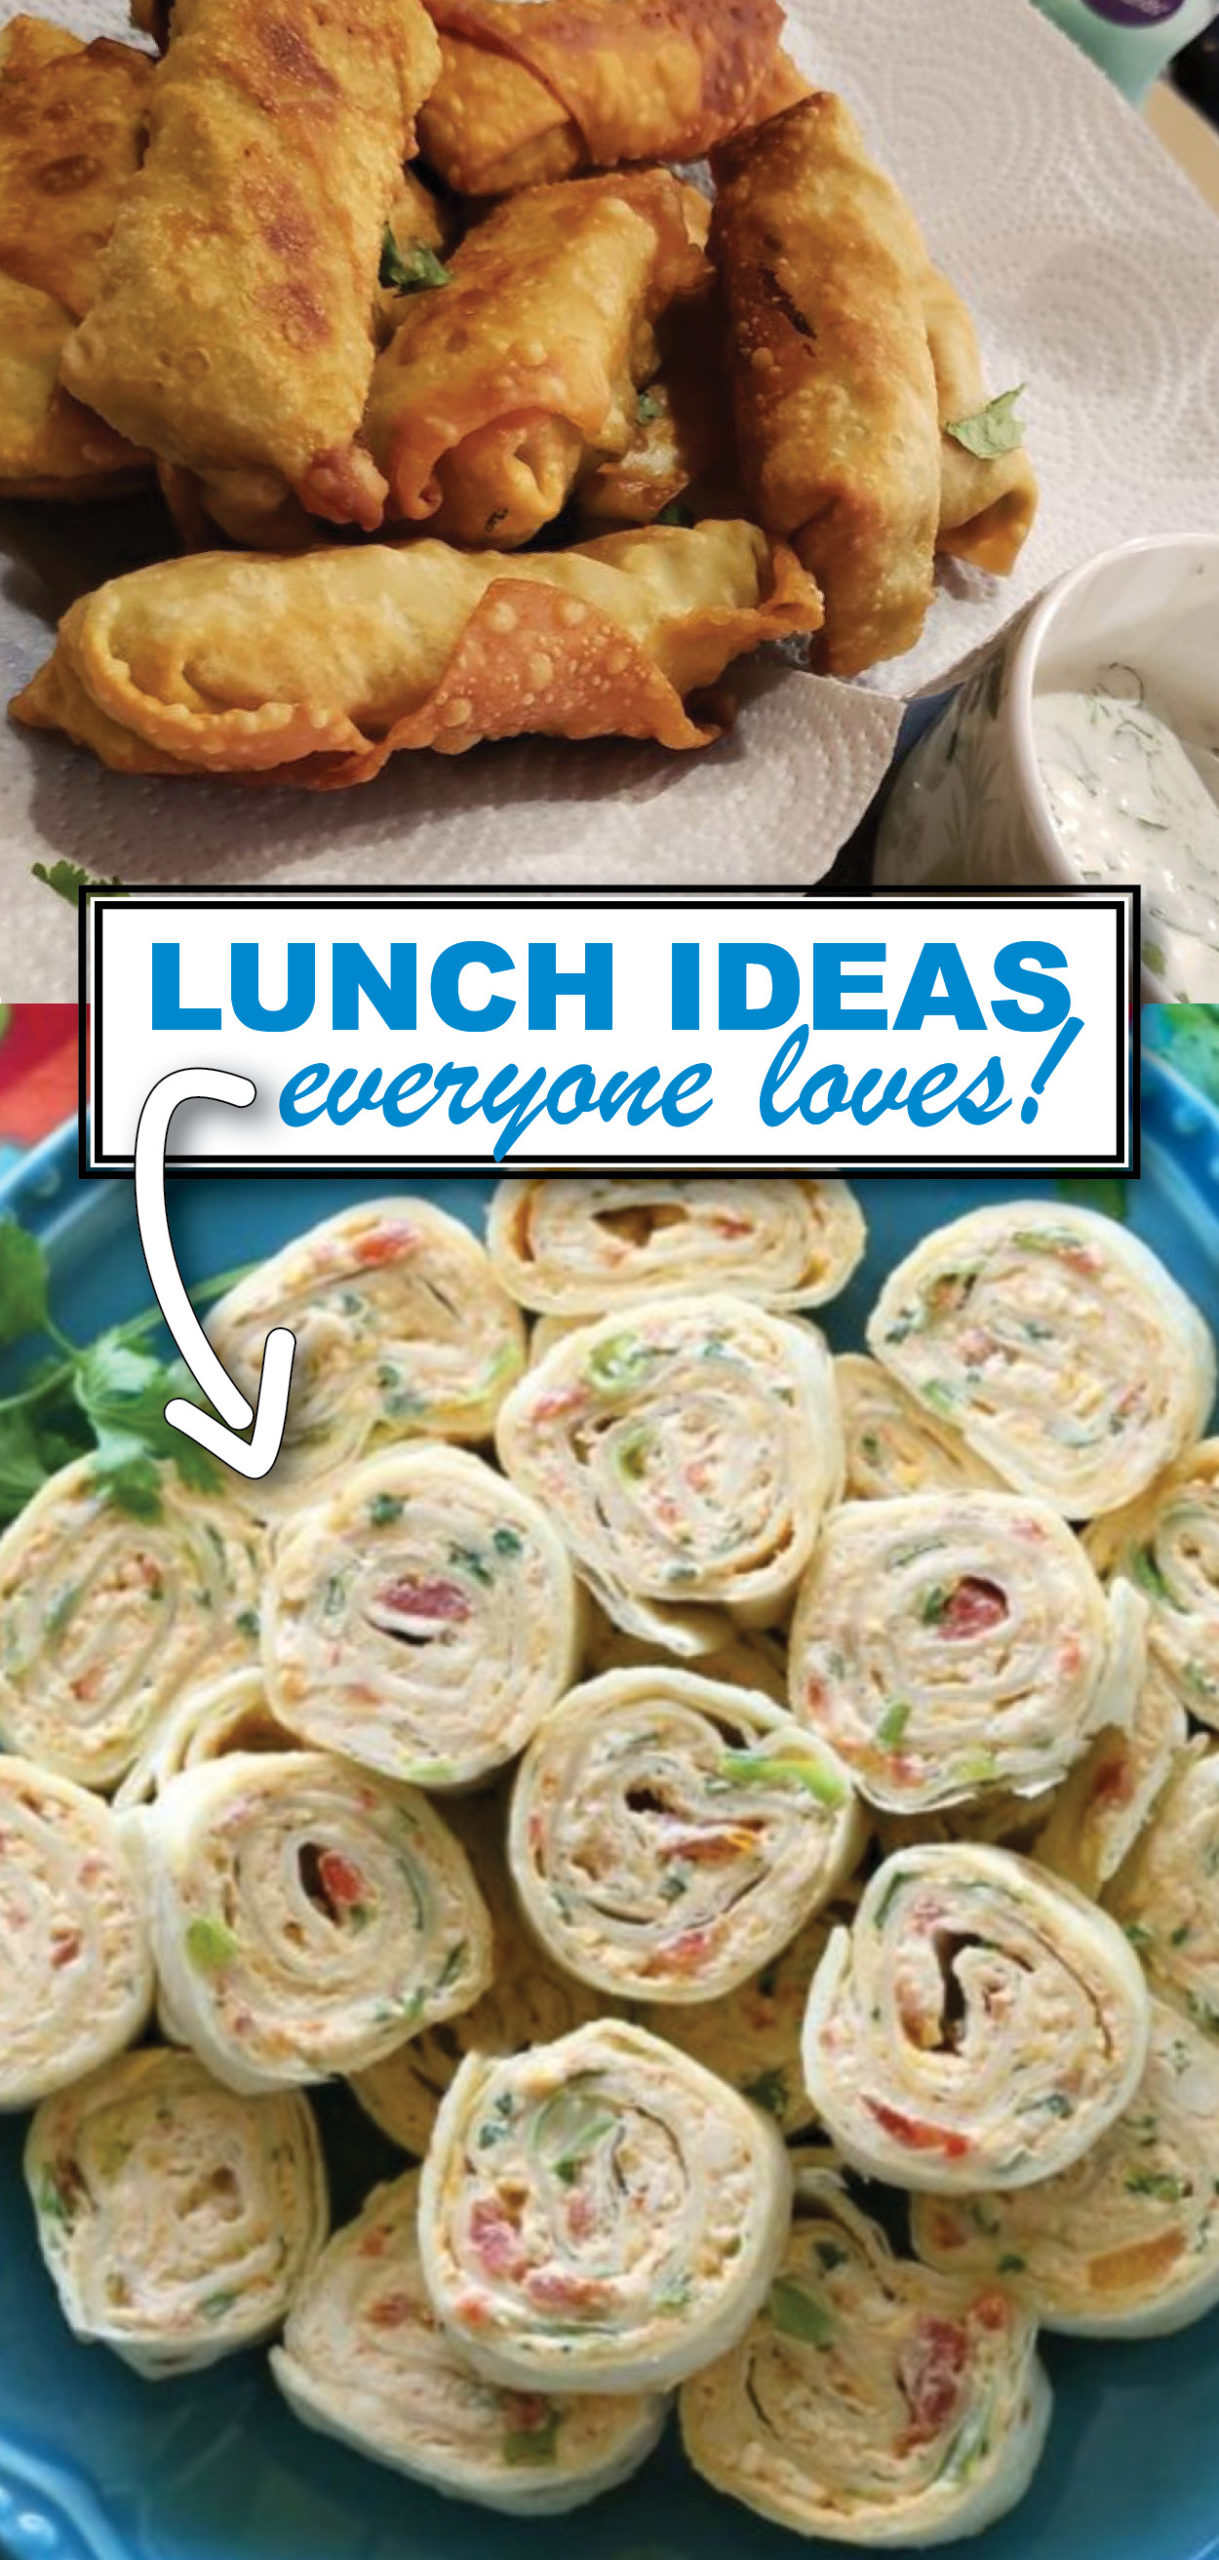 Lunch Ideas Everyone Loves